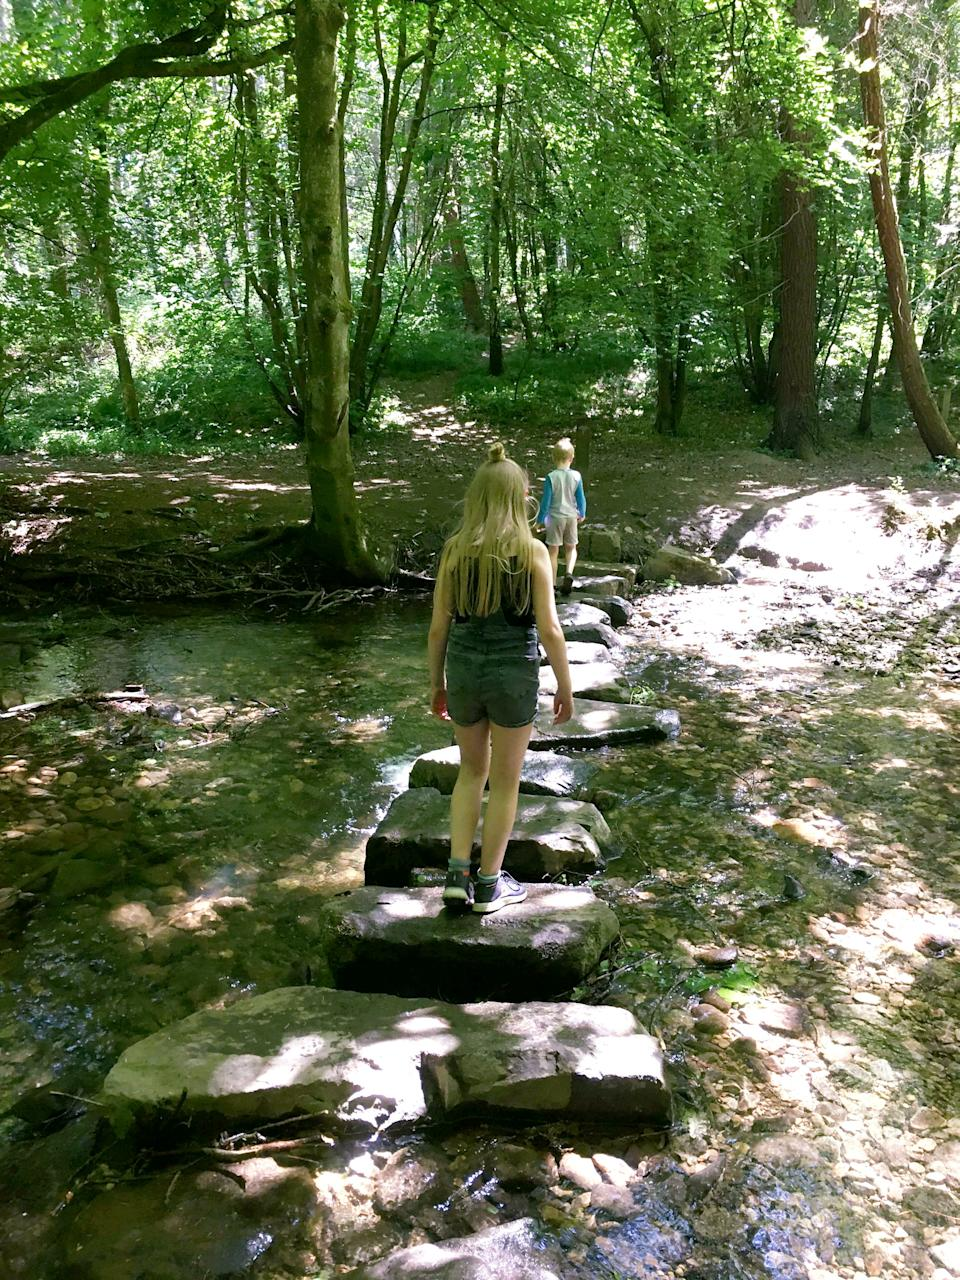 They went for a hike near their Welsh home - and pretended it was the Dordogne (SWNS)